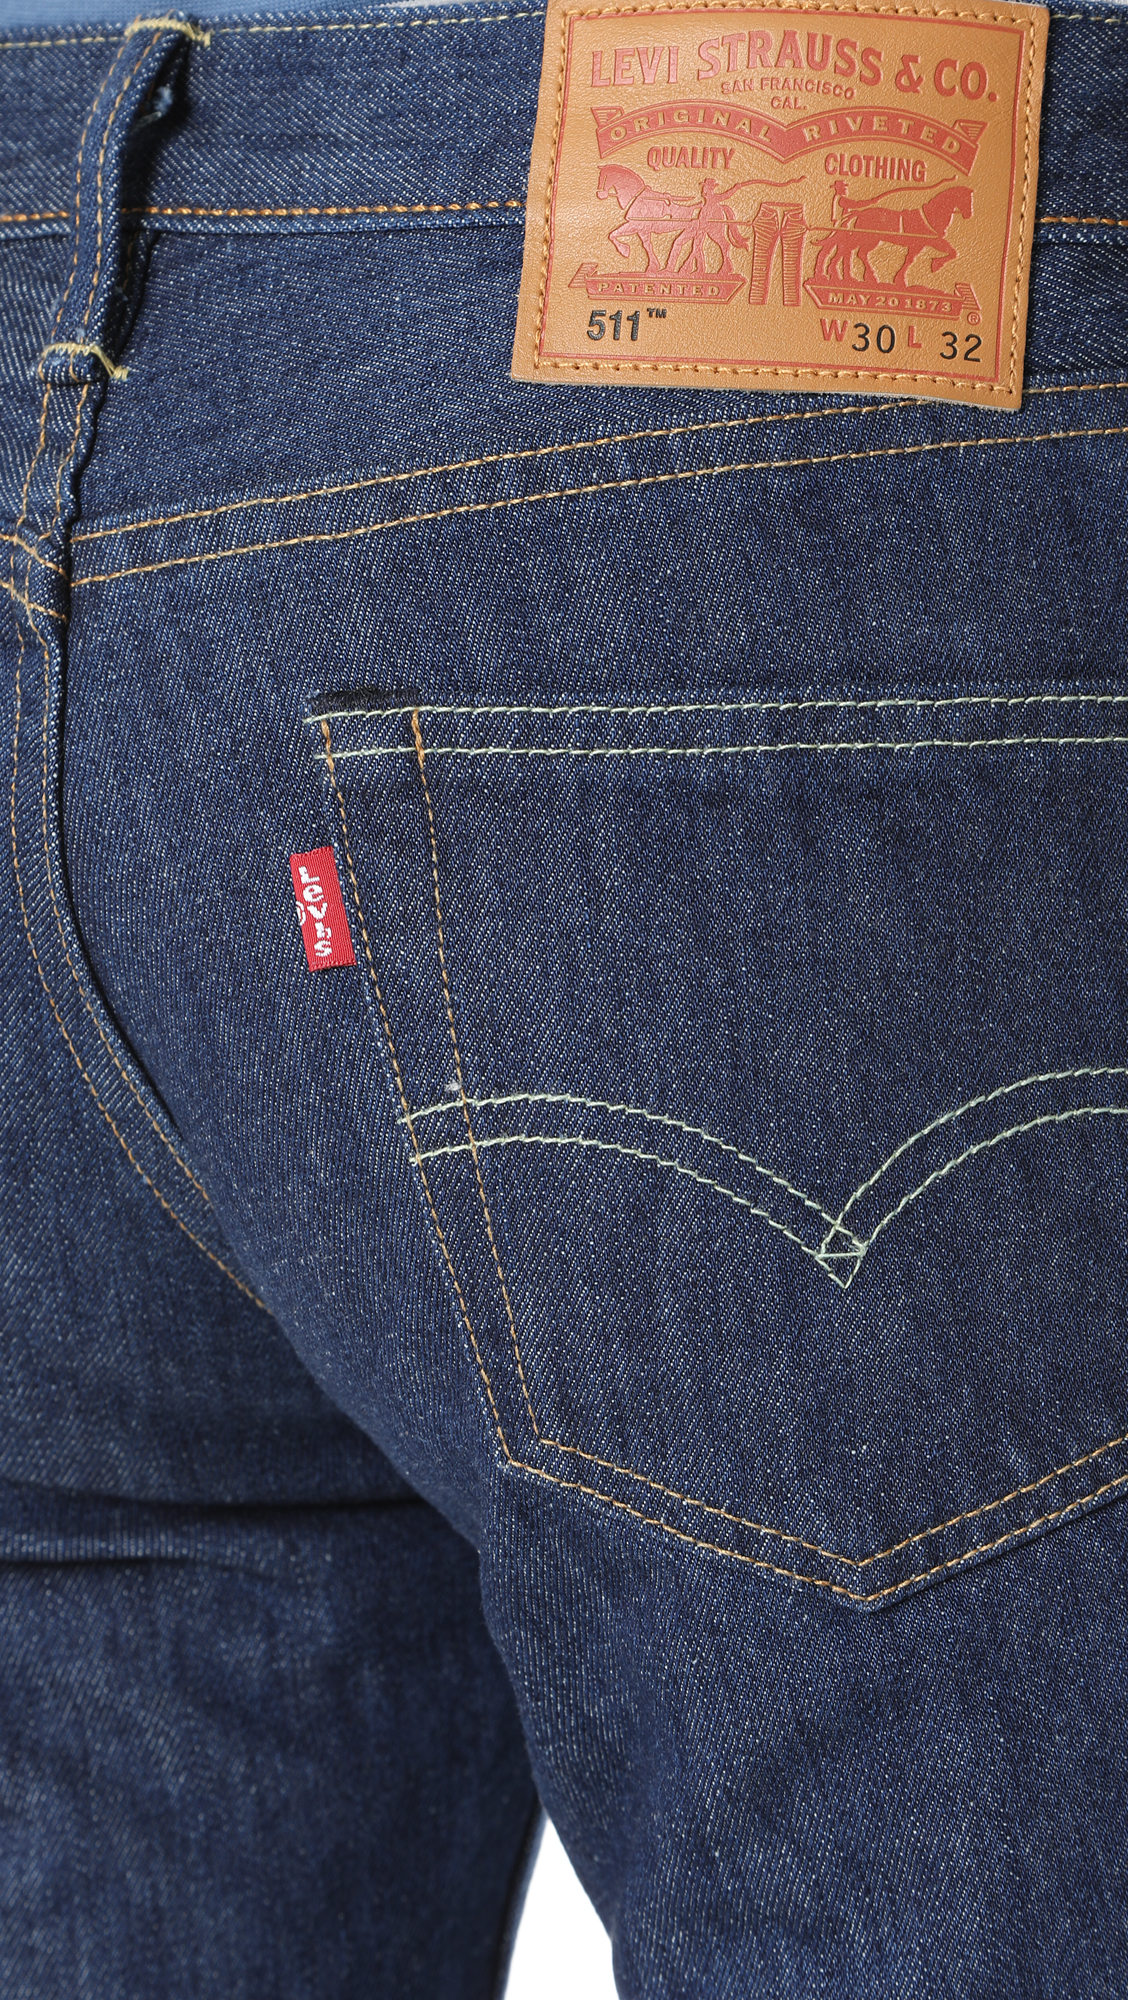 077326631c4a83 Levi's 511 Made in the USA Slim Fit Jeans   EAST DANE